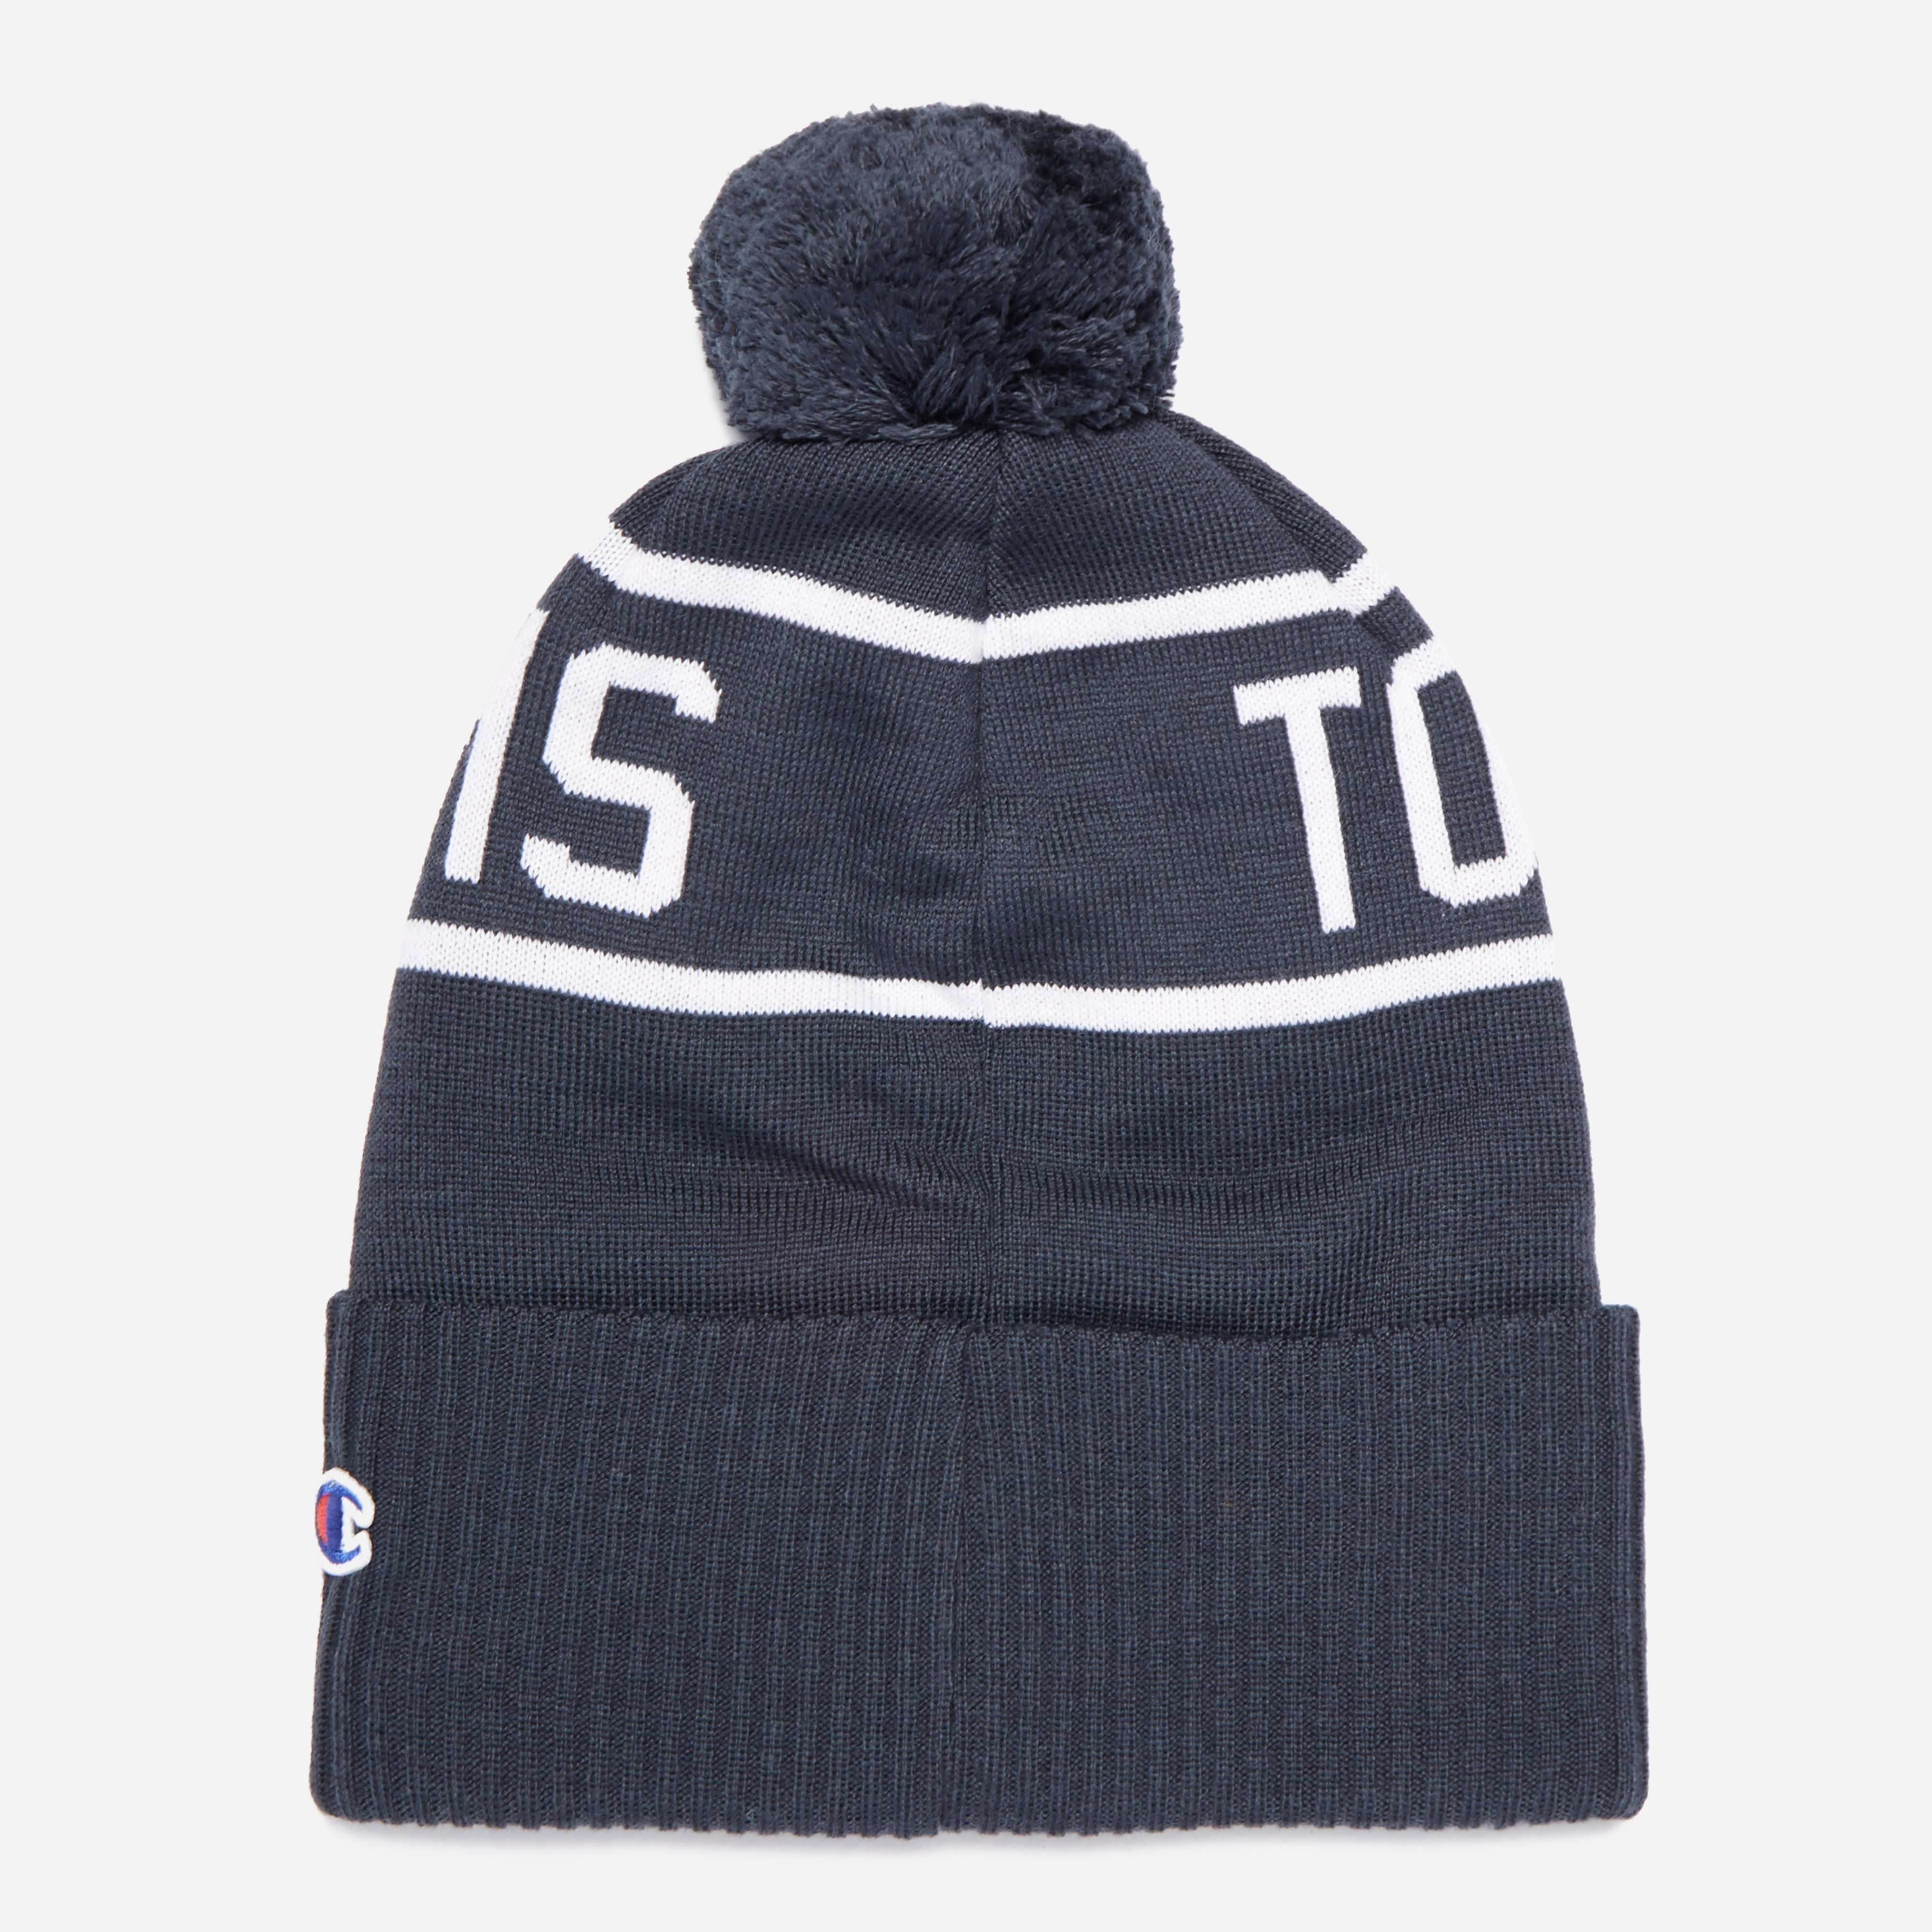 Champion x BEAMS Beanie